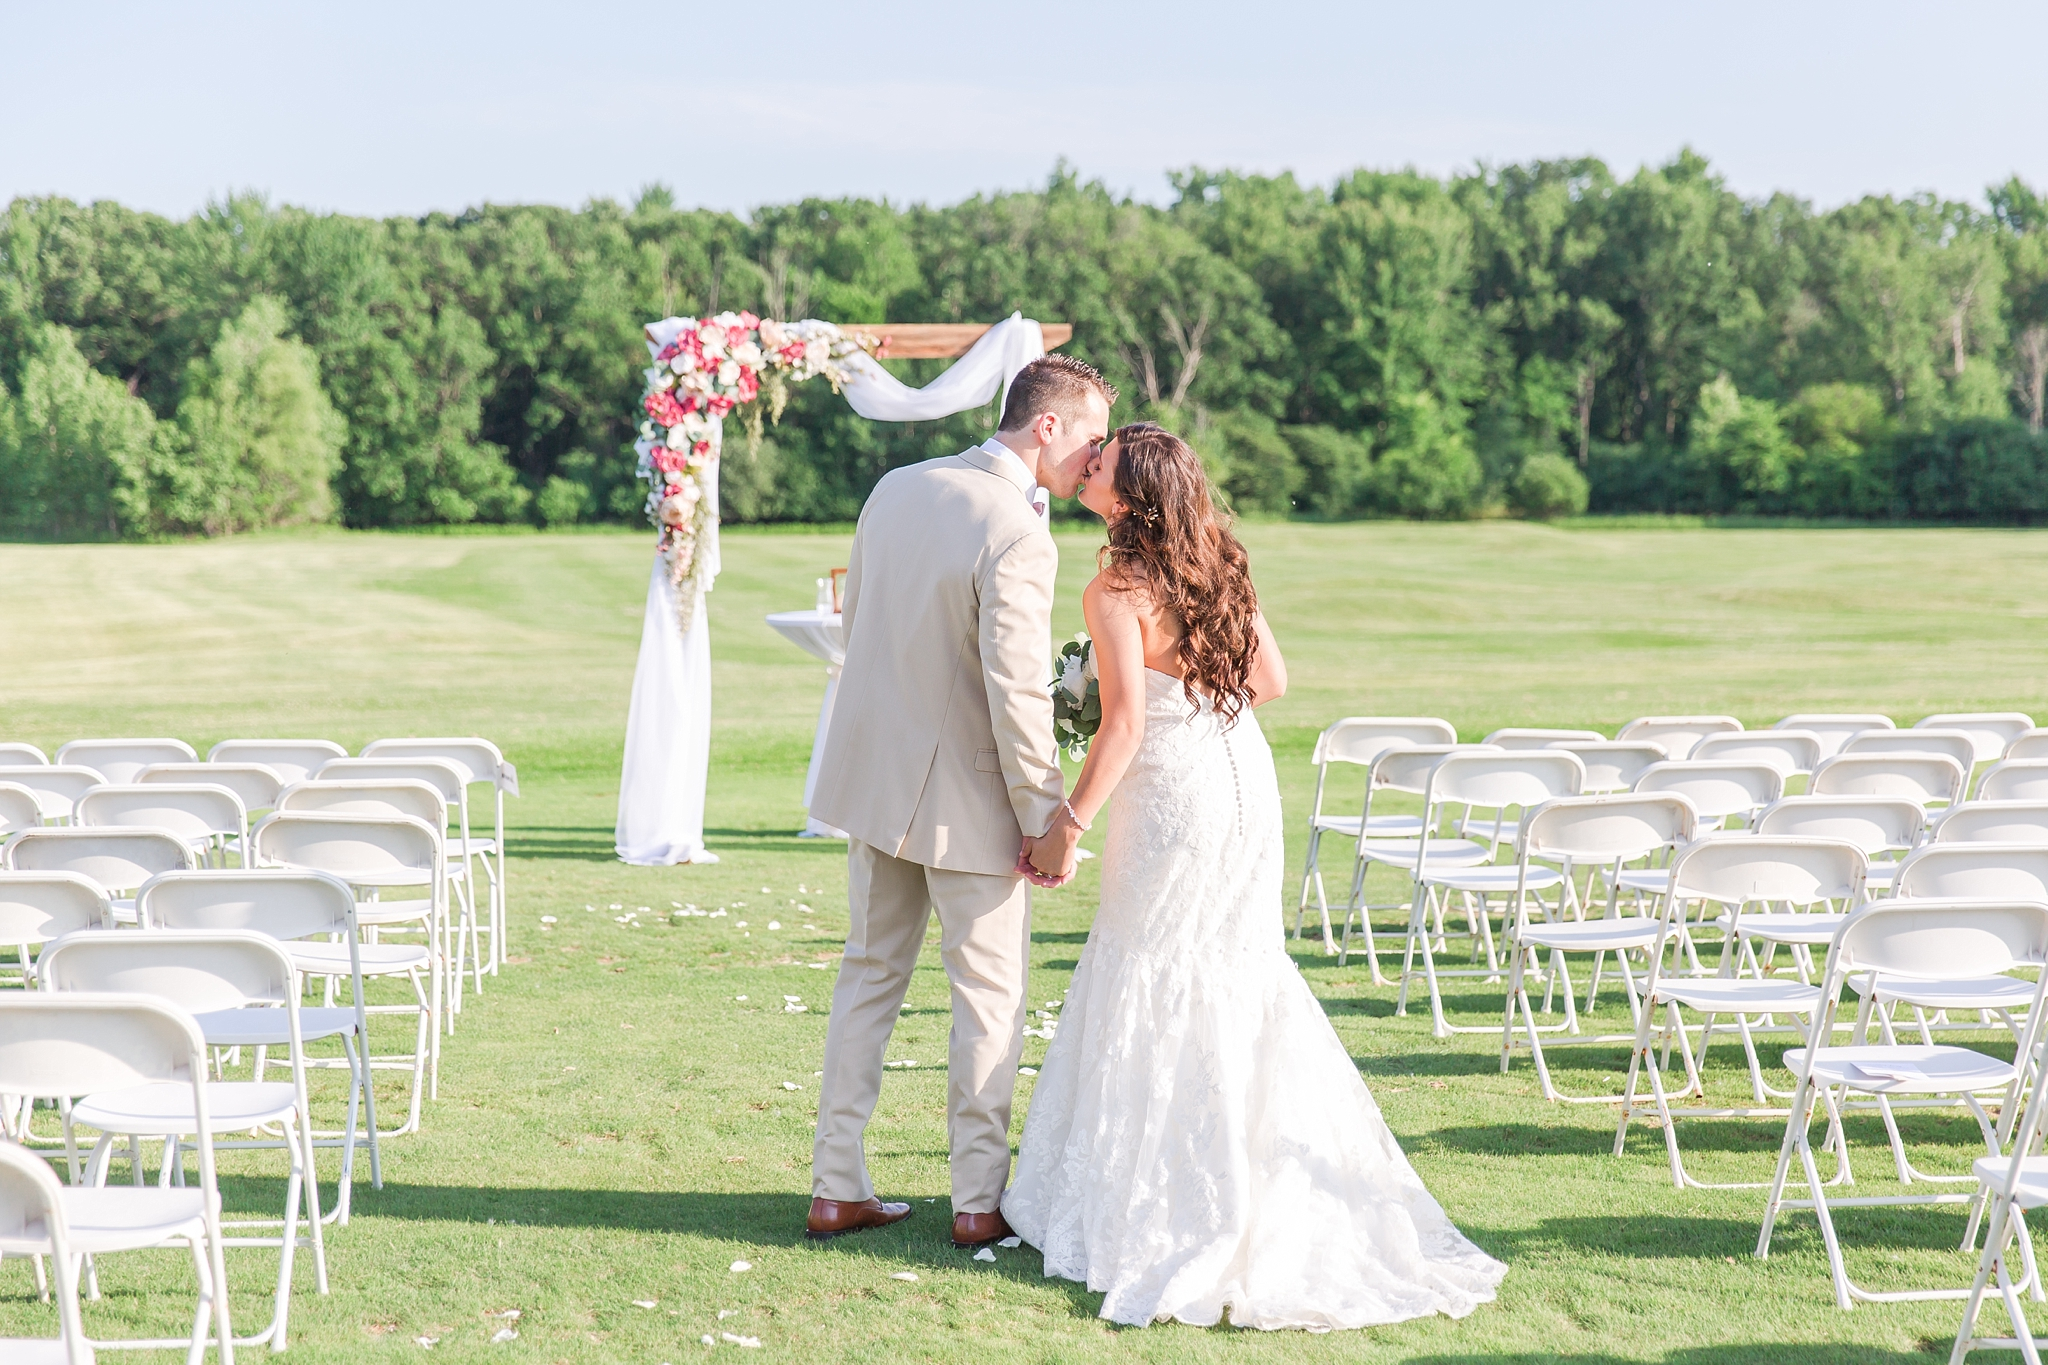 candid-timeless-wedding-photos-at-the-captains-club-in-grand-blanc-michigan-by-courtney-carolyn-photography_0059.jpg